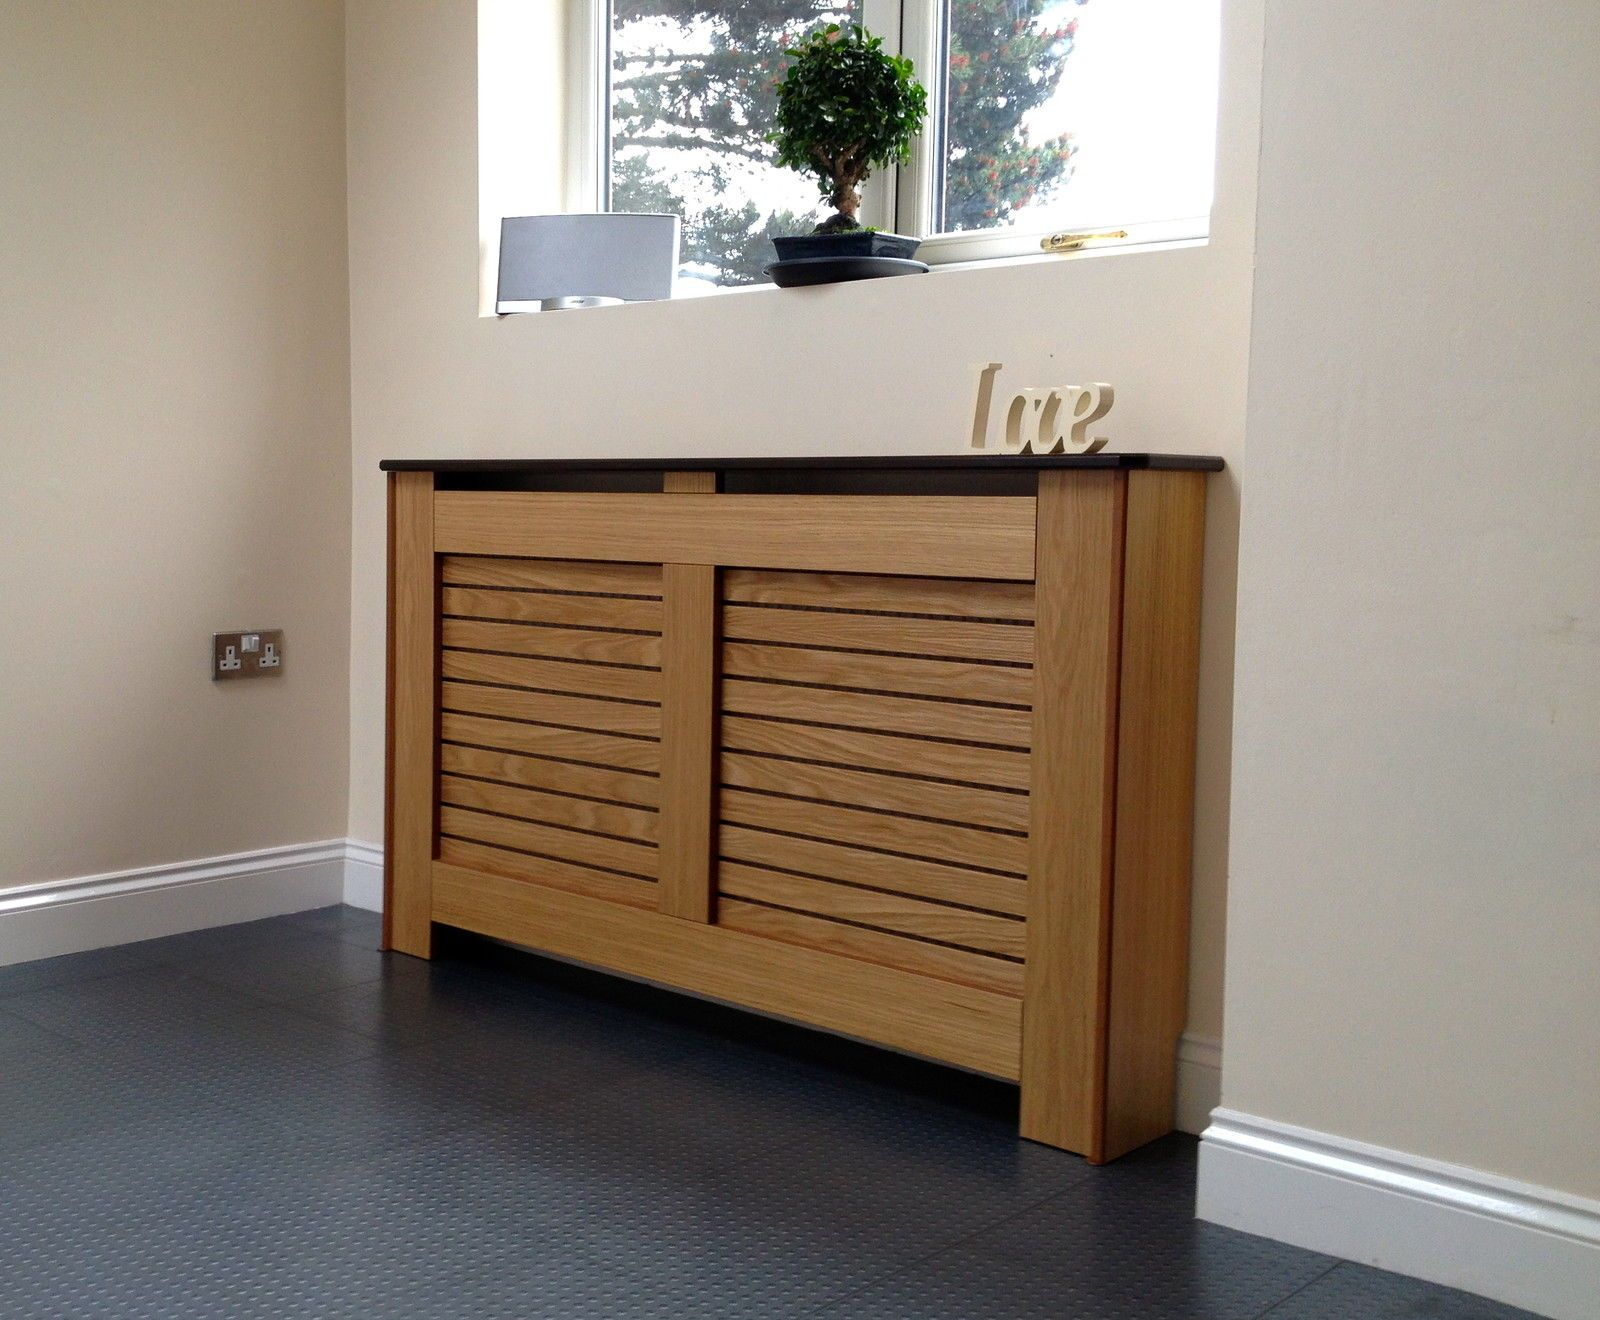 Oak Radiator Covers Cabinets Made To Measure - Ebay